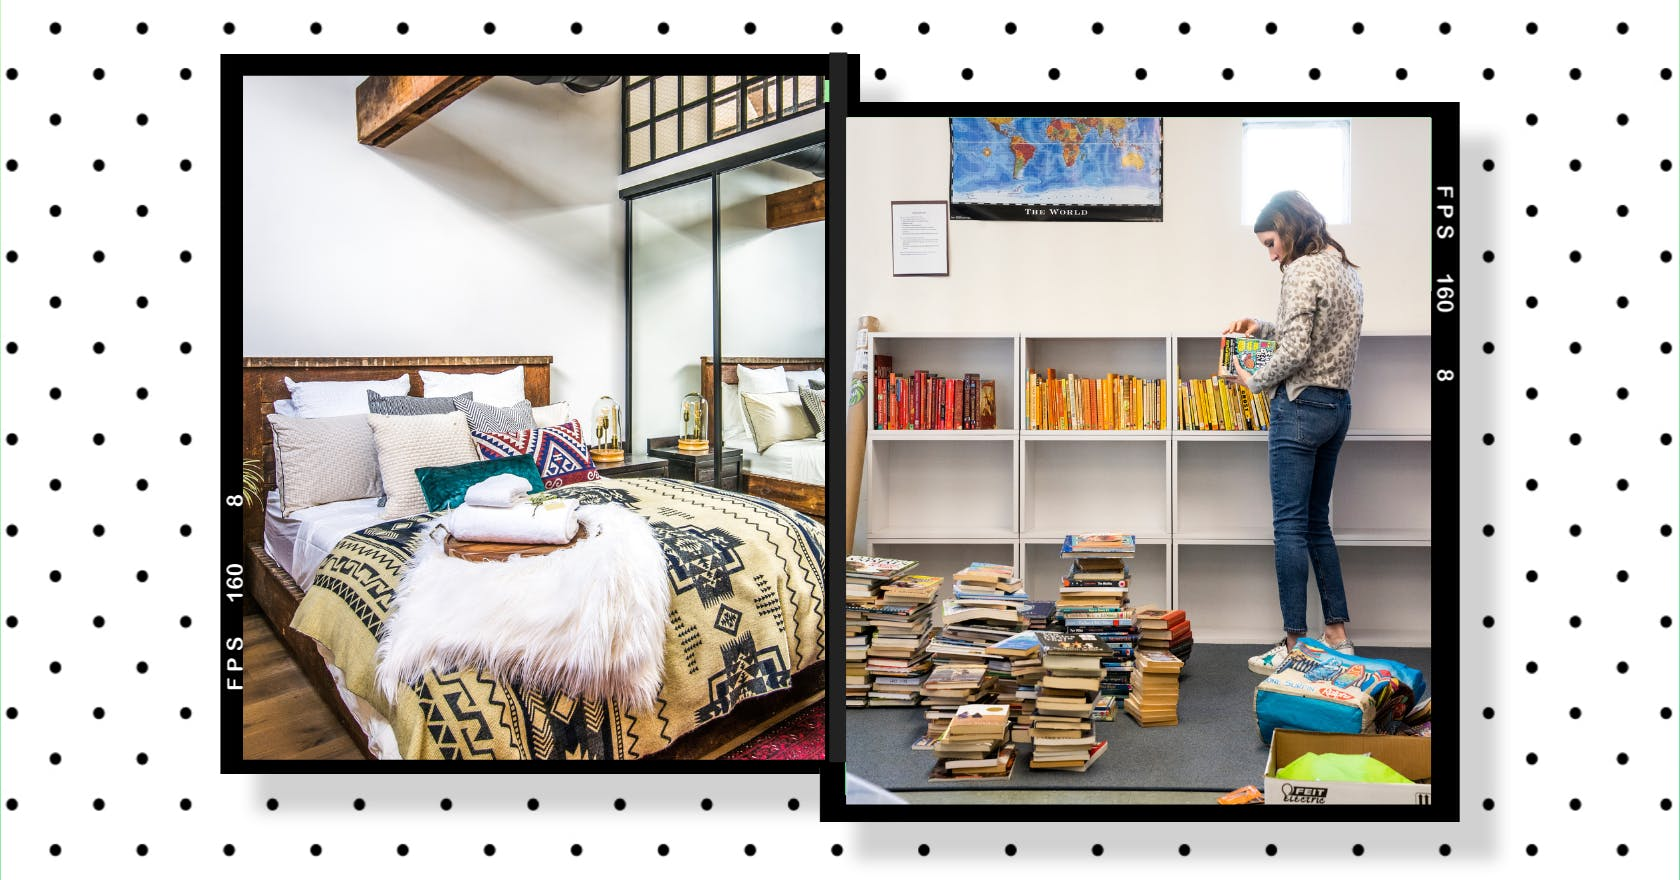 12 brilliant home makeover shows streaming on Netflix